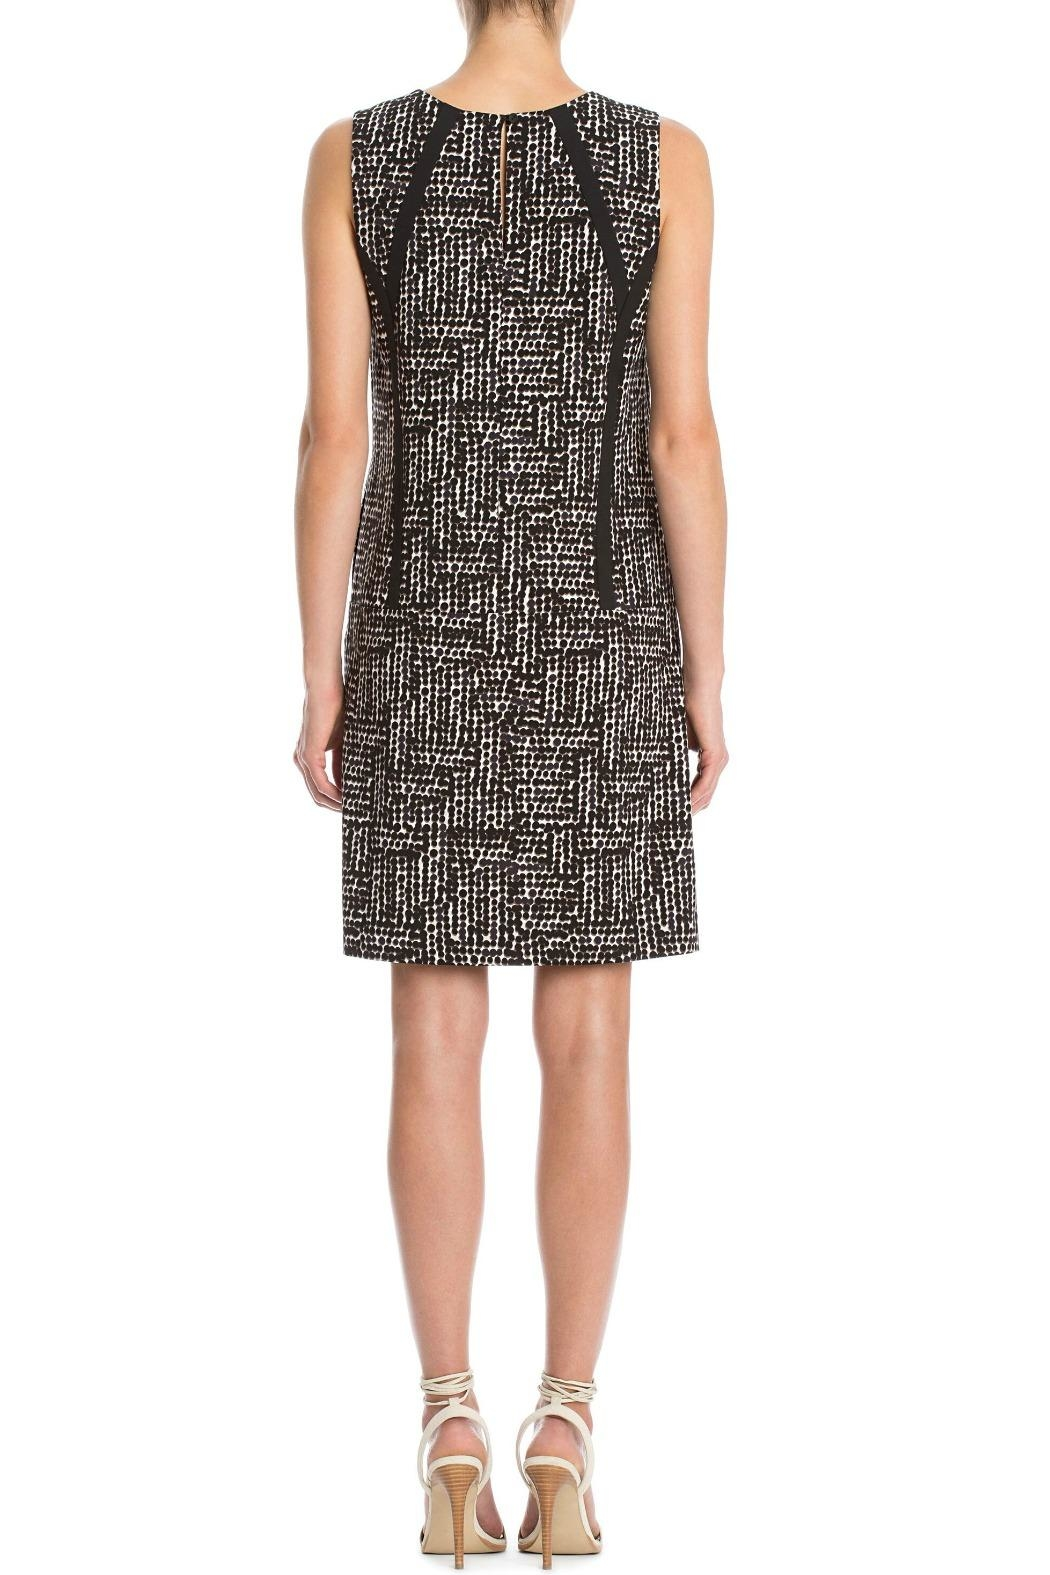 Nic + Zoe Dots Direction Dress - Side Cropped Image